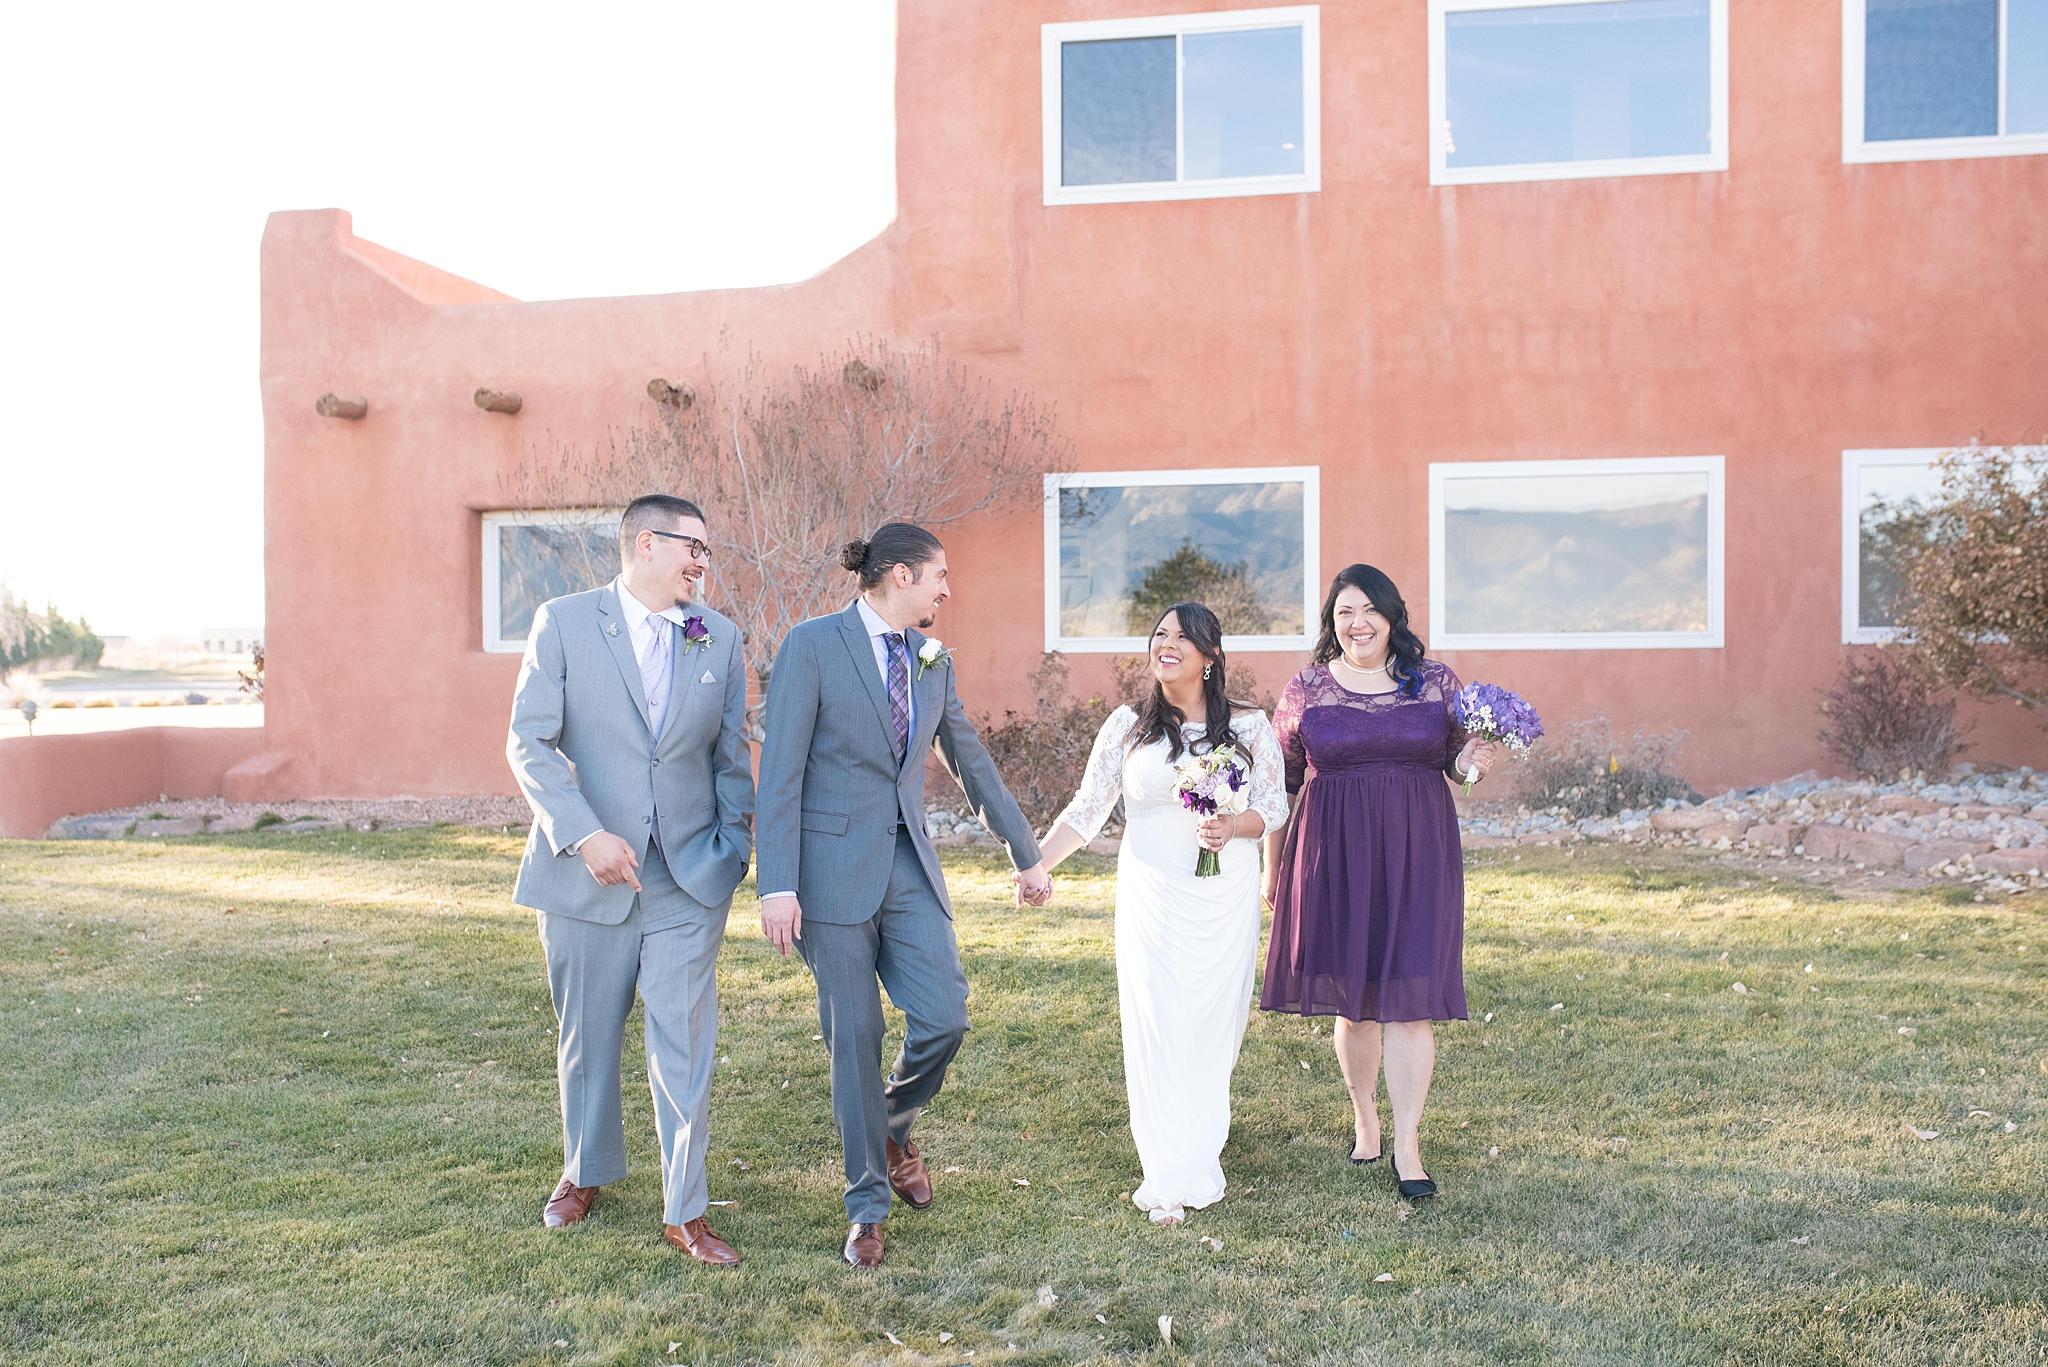 kaylakittsphotography-travis-michelle-prairie-star-albuquerque-wedding-photographer_0018.jpg